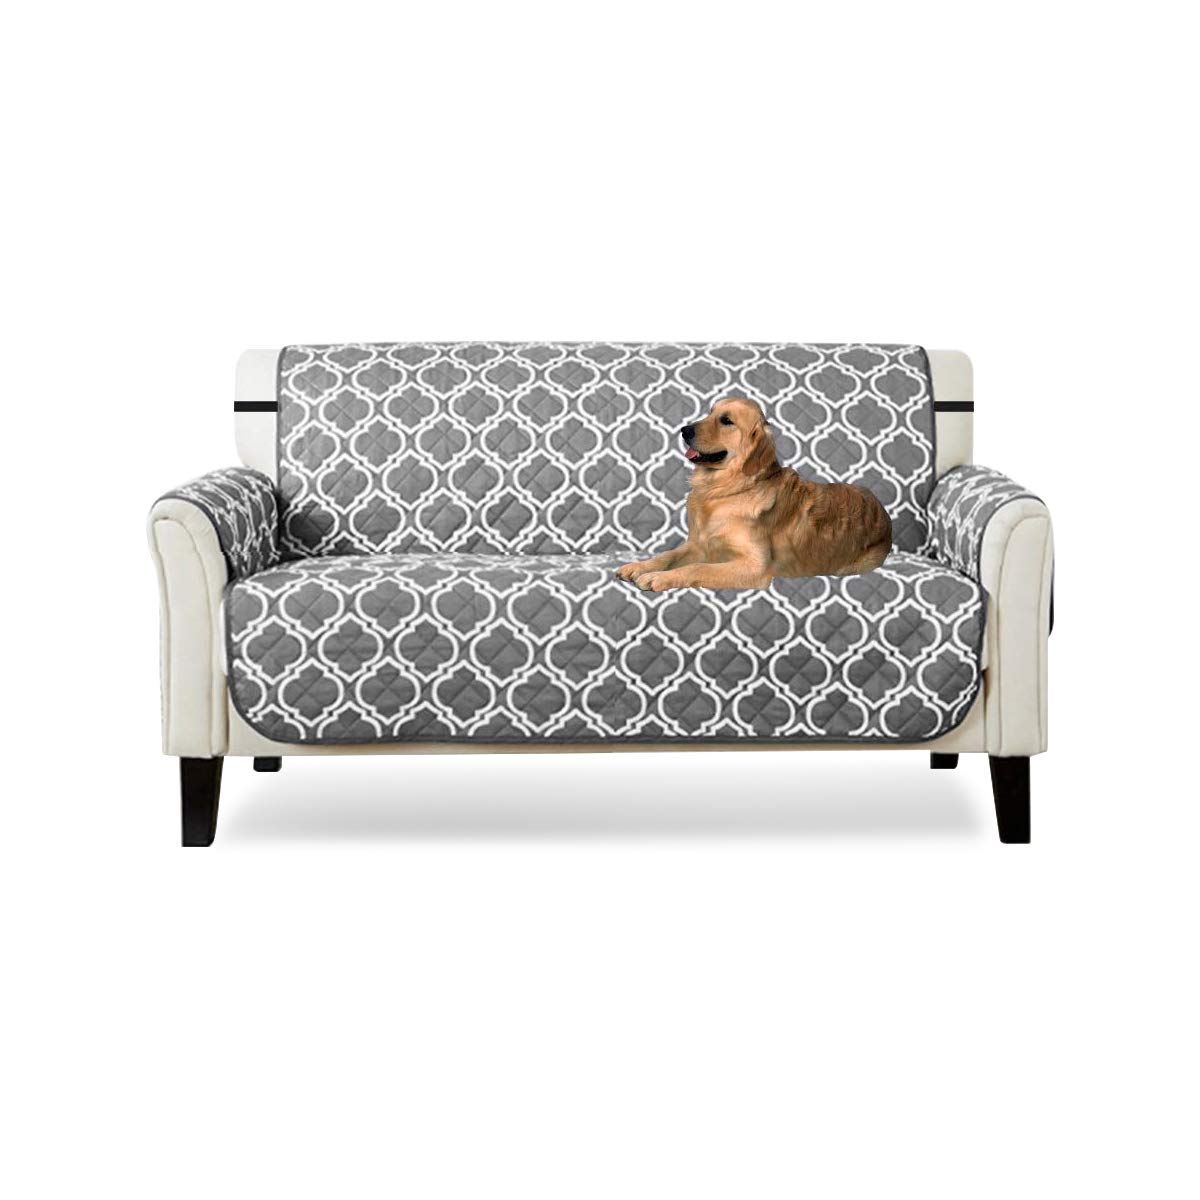 PETCUTE Quilted Sofa cover sofa slipcover sofa protector for Dog cat Furniture Protector 2 Seater